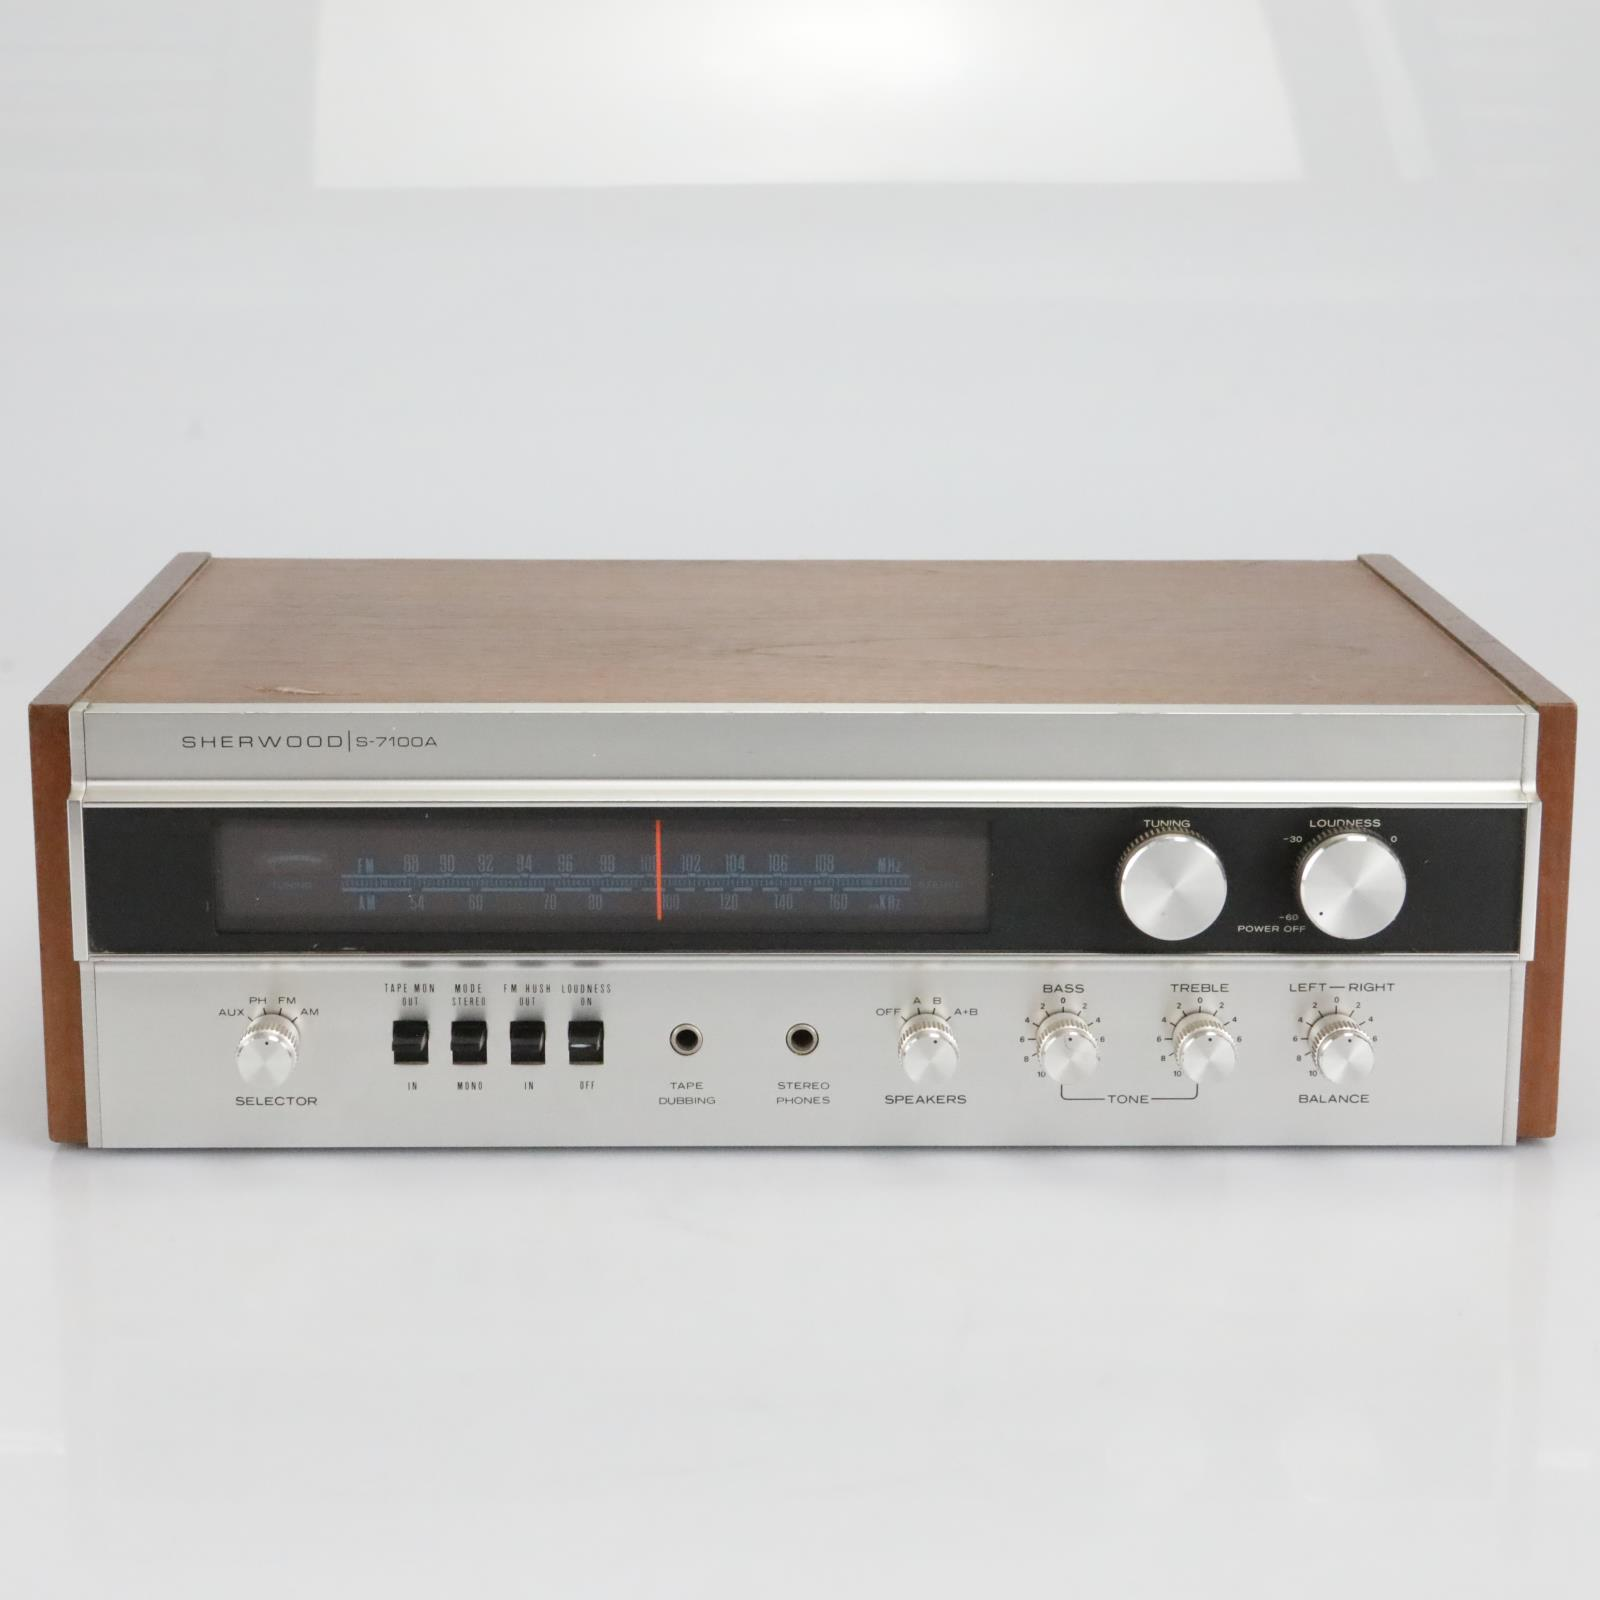 Sherwood S-7100A Stereo Receiver #40164